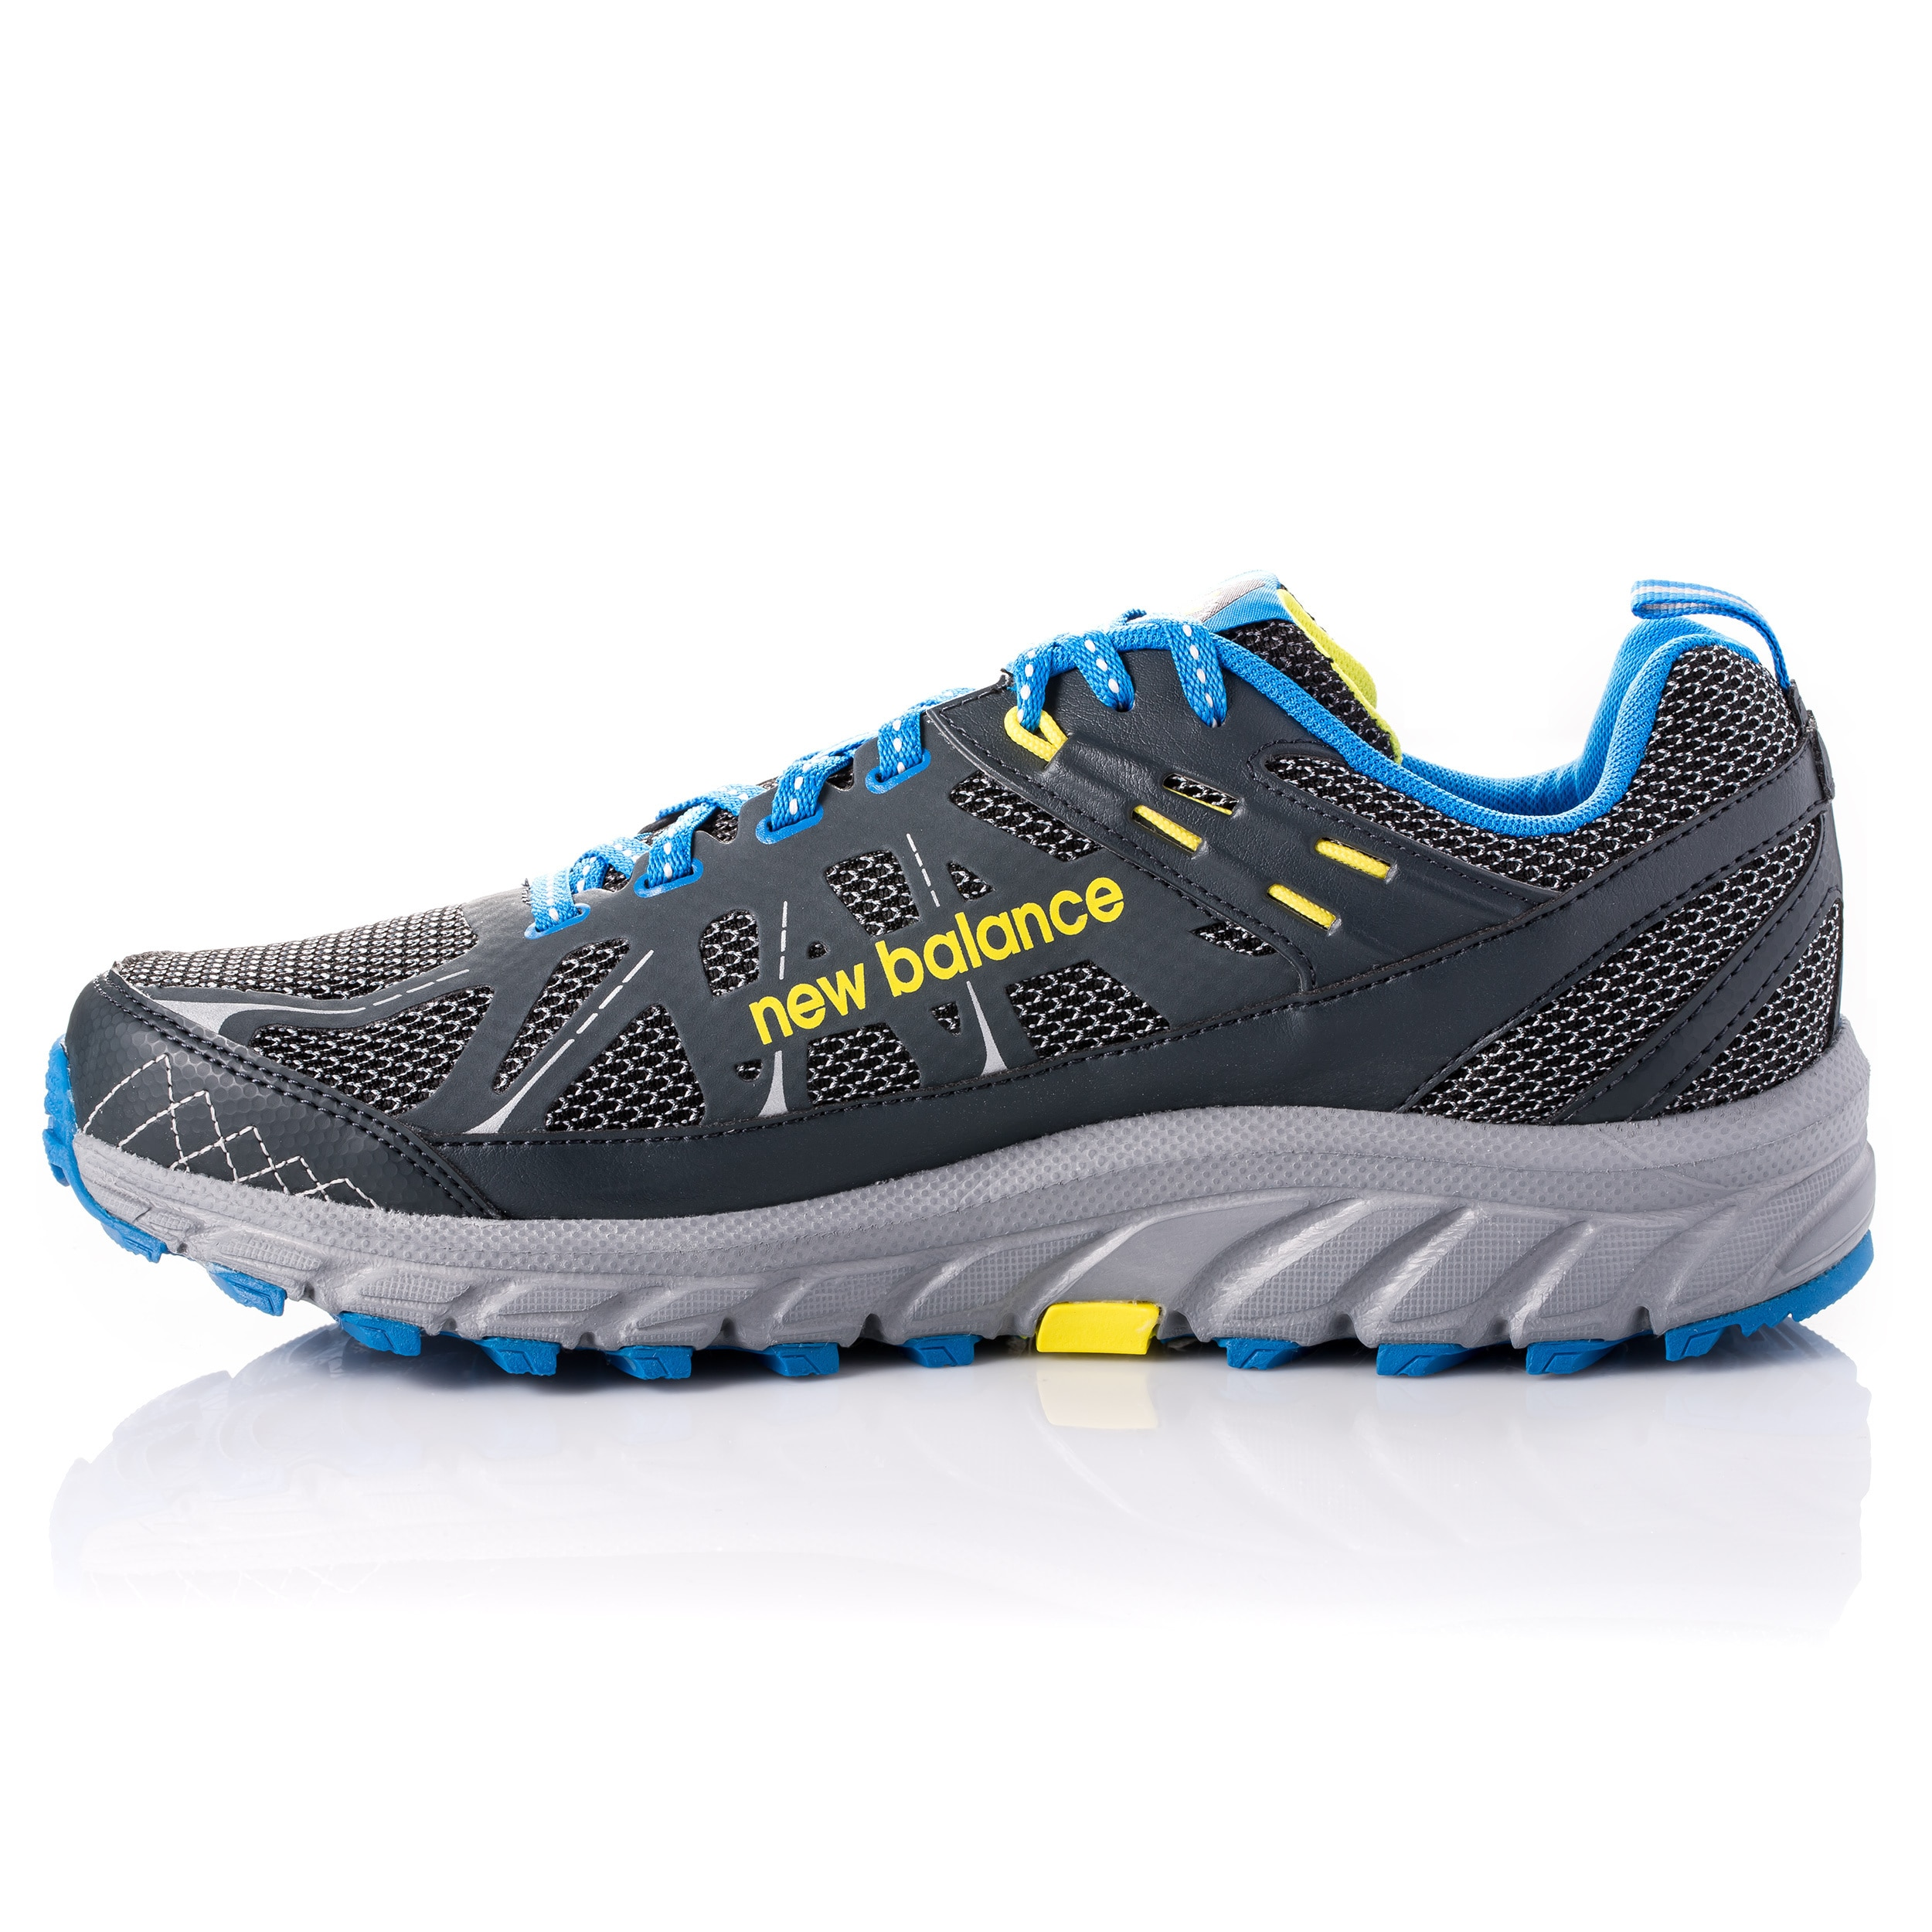 162eb191991af Shop New Balance Men's T610v4 Trail Running - Free Shipping Today -  Overstock - 10641365